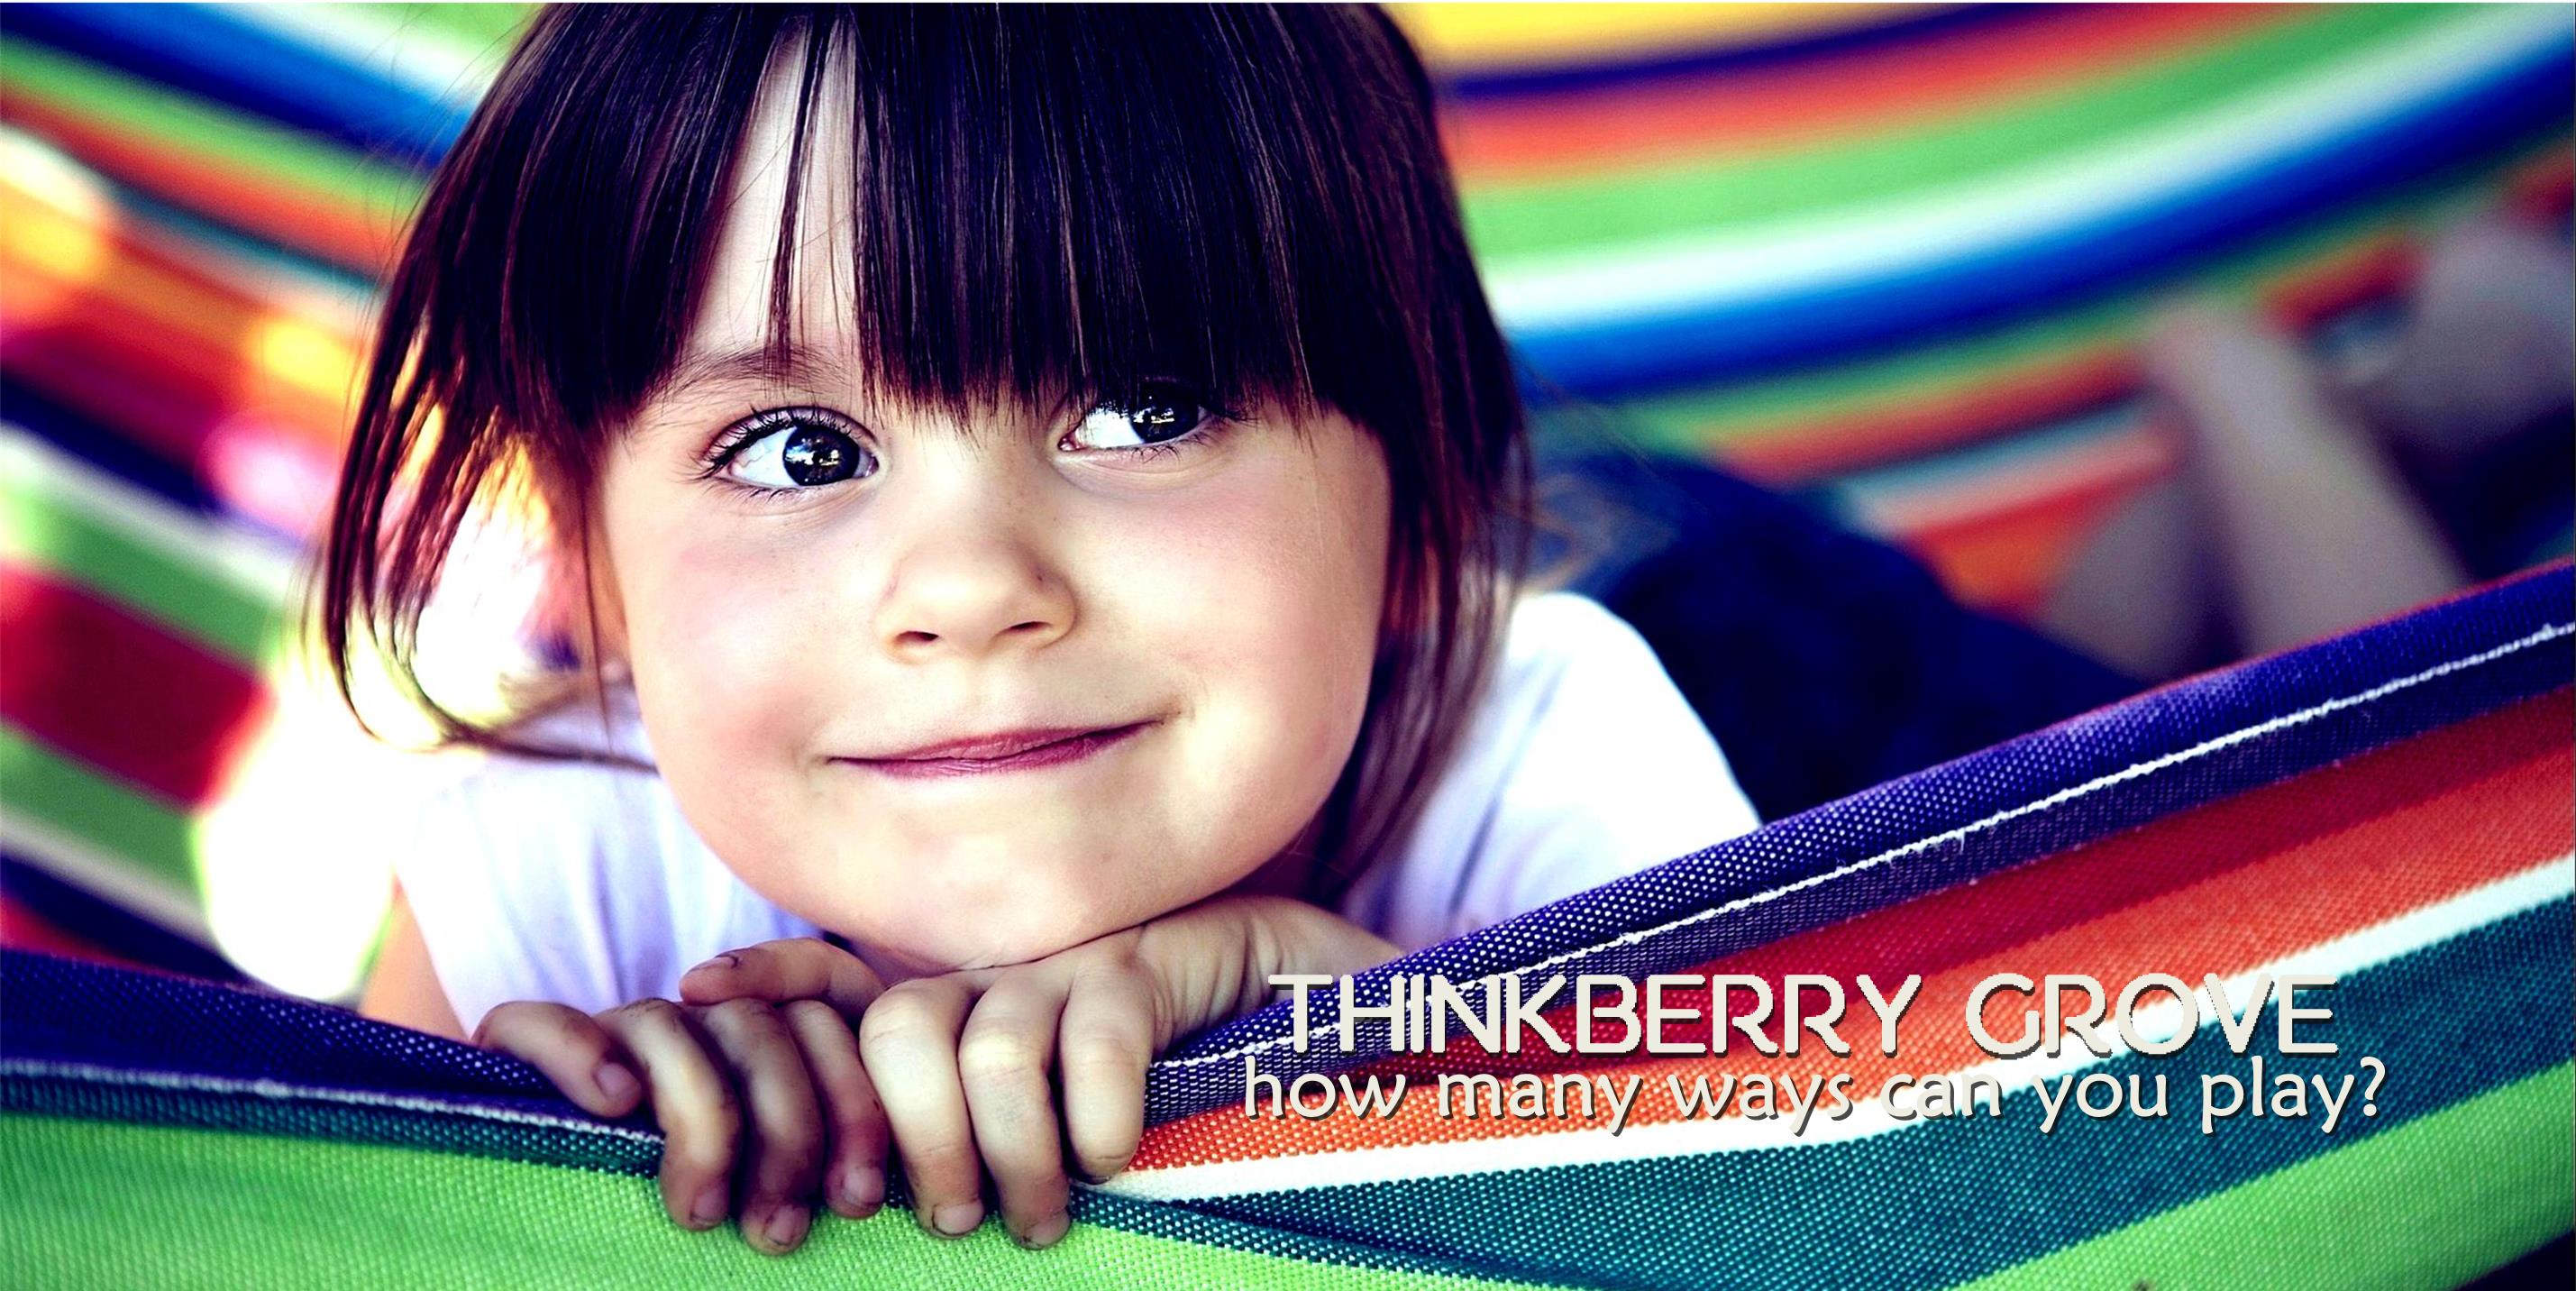 thinkberry grove fb banner 2